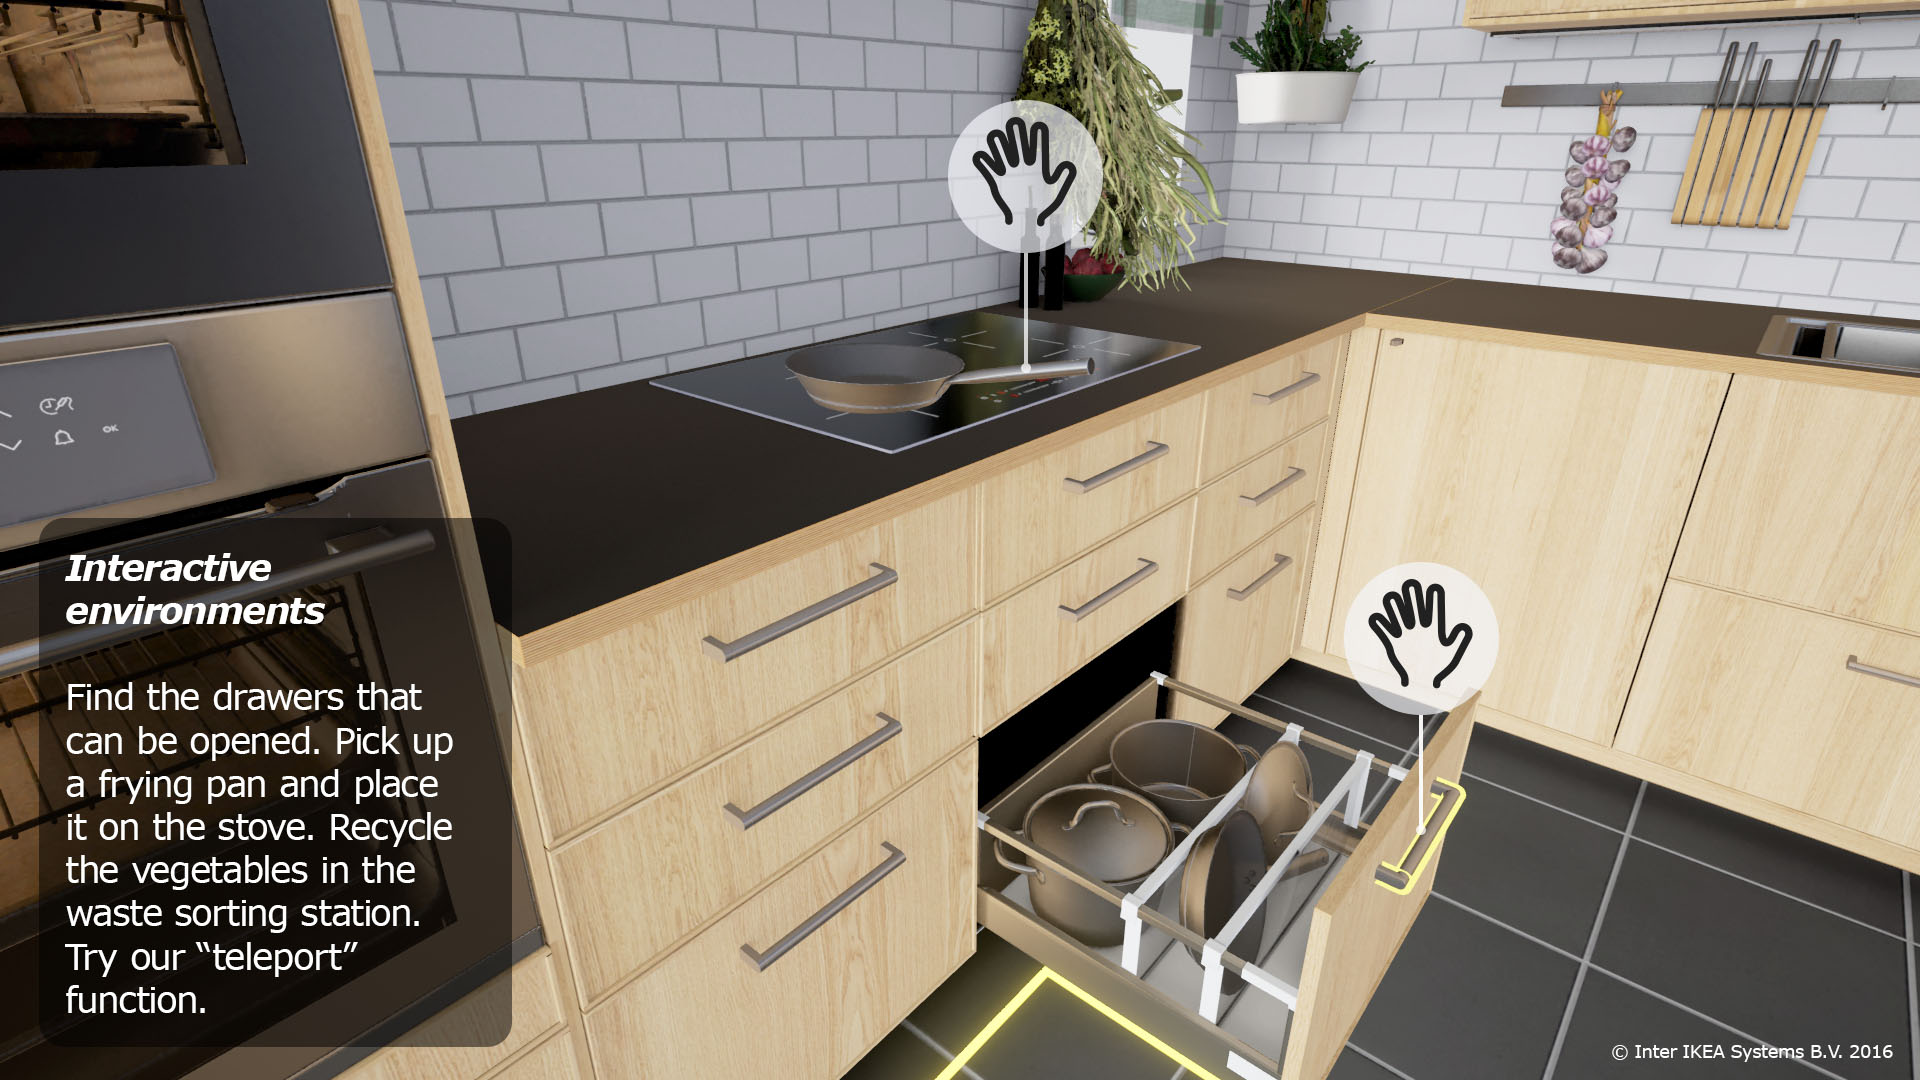 Ikea Embraces Virtual Reality With Virtual Kitchen for HTC Vive